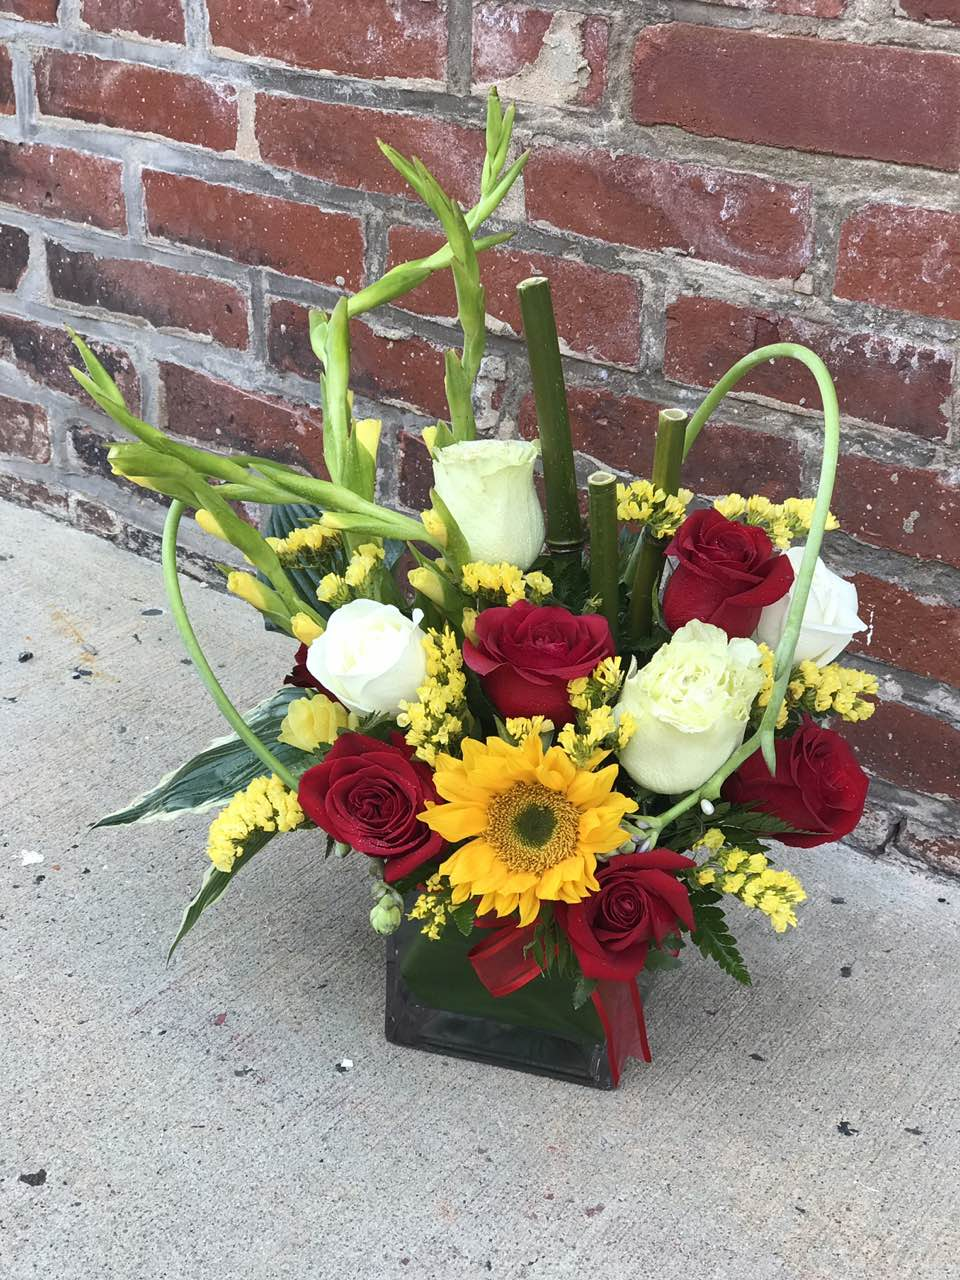 The cheerful autumn floral arrangement is rich with color, making it a stylish, energizing pick for any fall occasion.  Includes:  Sunflower, red and white roses? yellow statice and gladioli, bamboo.  Cube vase Free message card